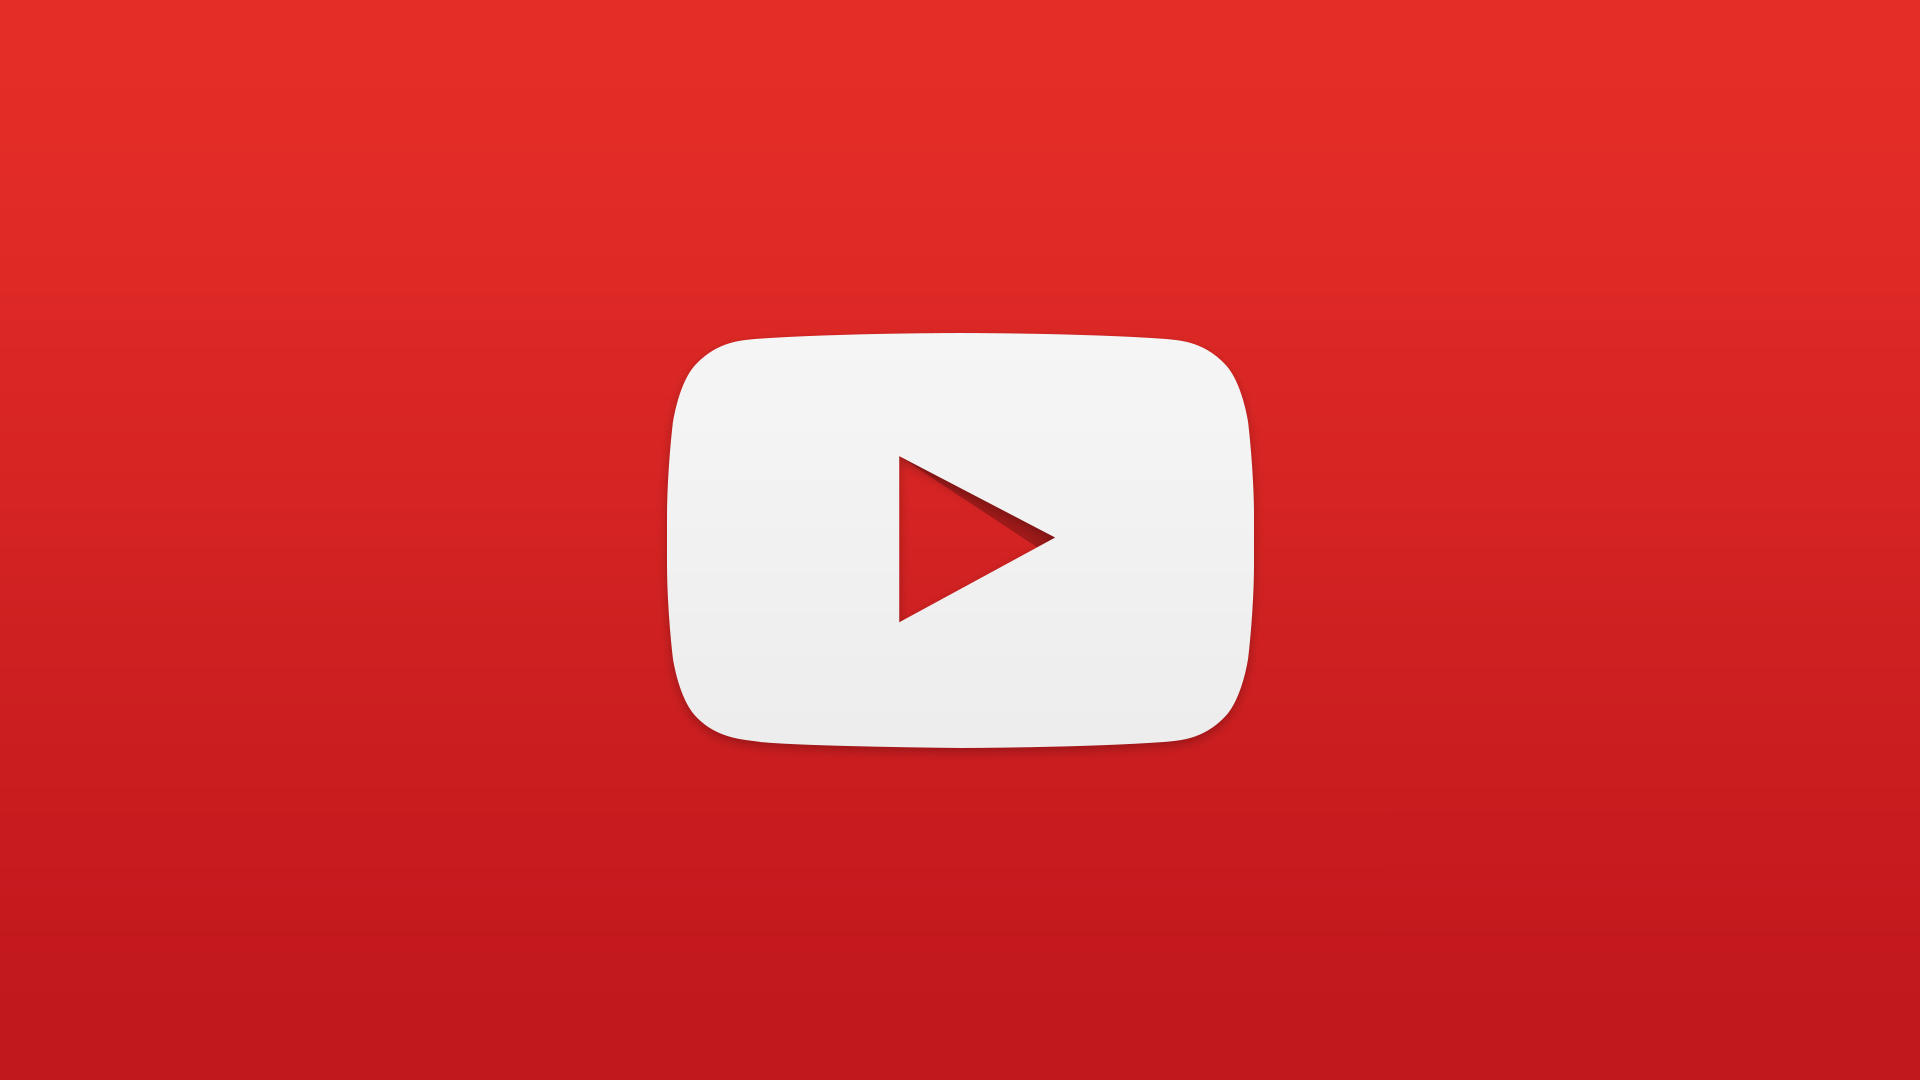 youtube play button wallpaper 62901